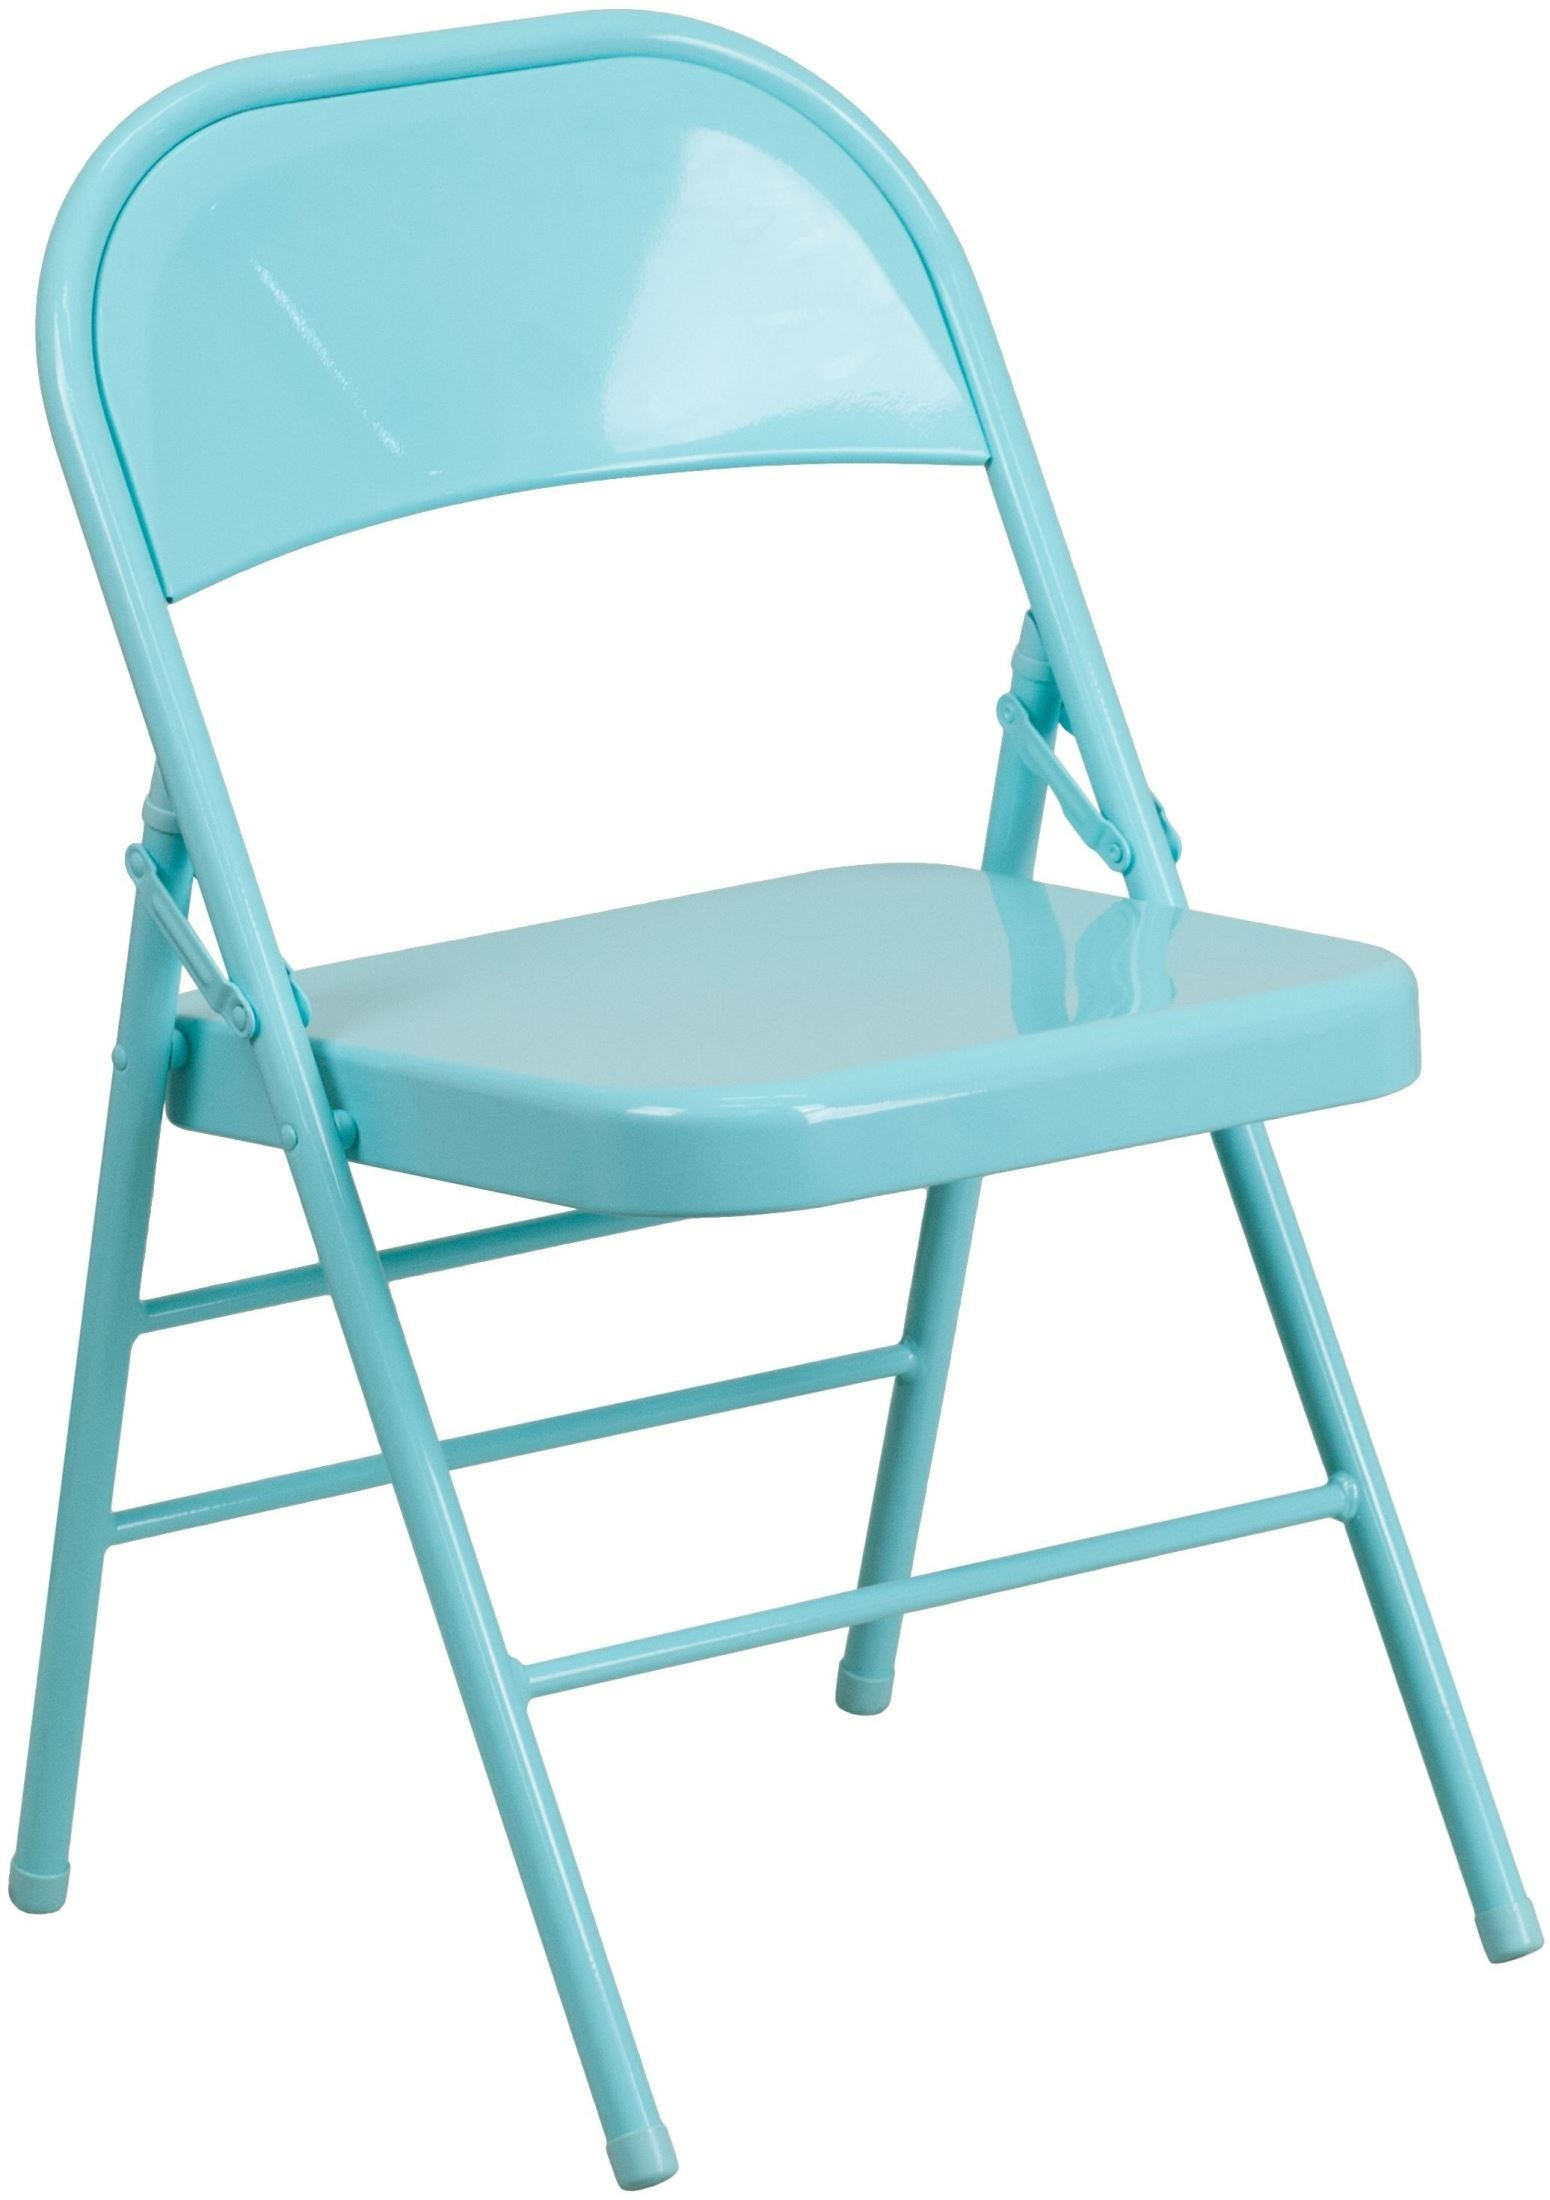 hercules folding chair brown wooden chairs colorburst series tantalizing teal triple braced